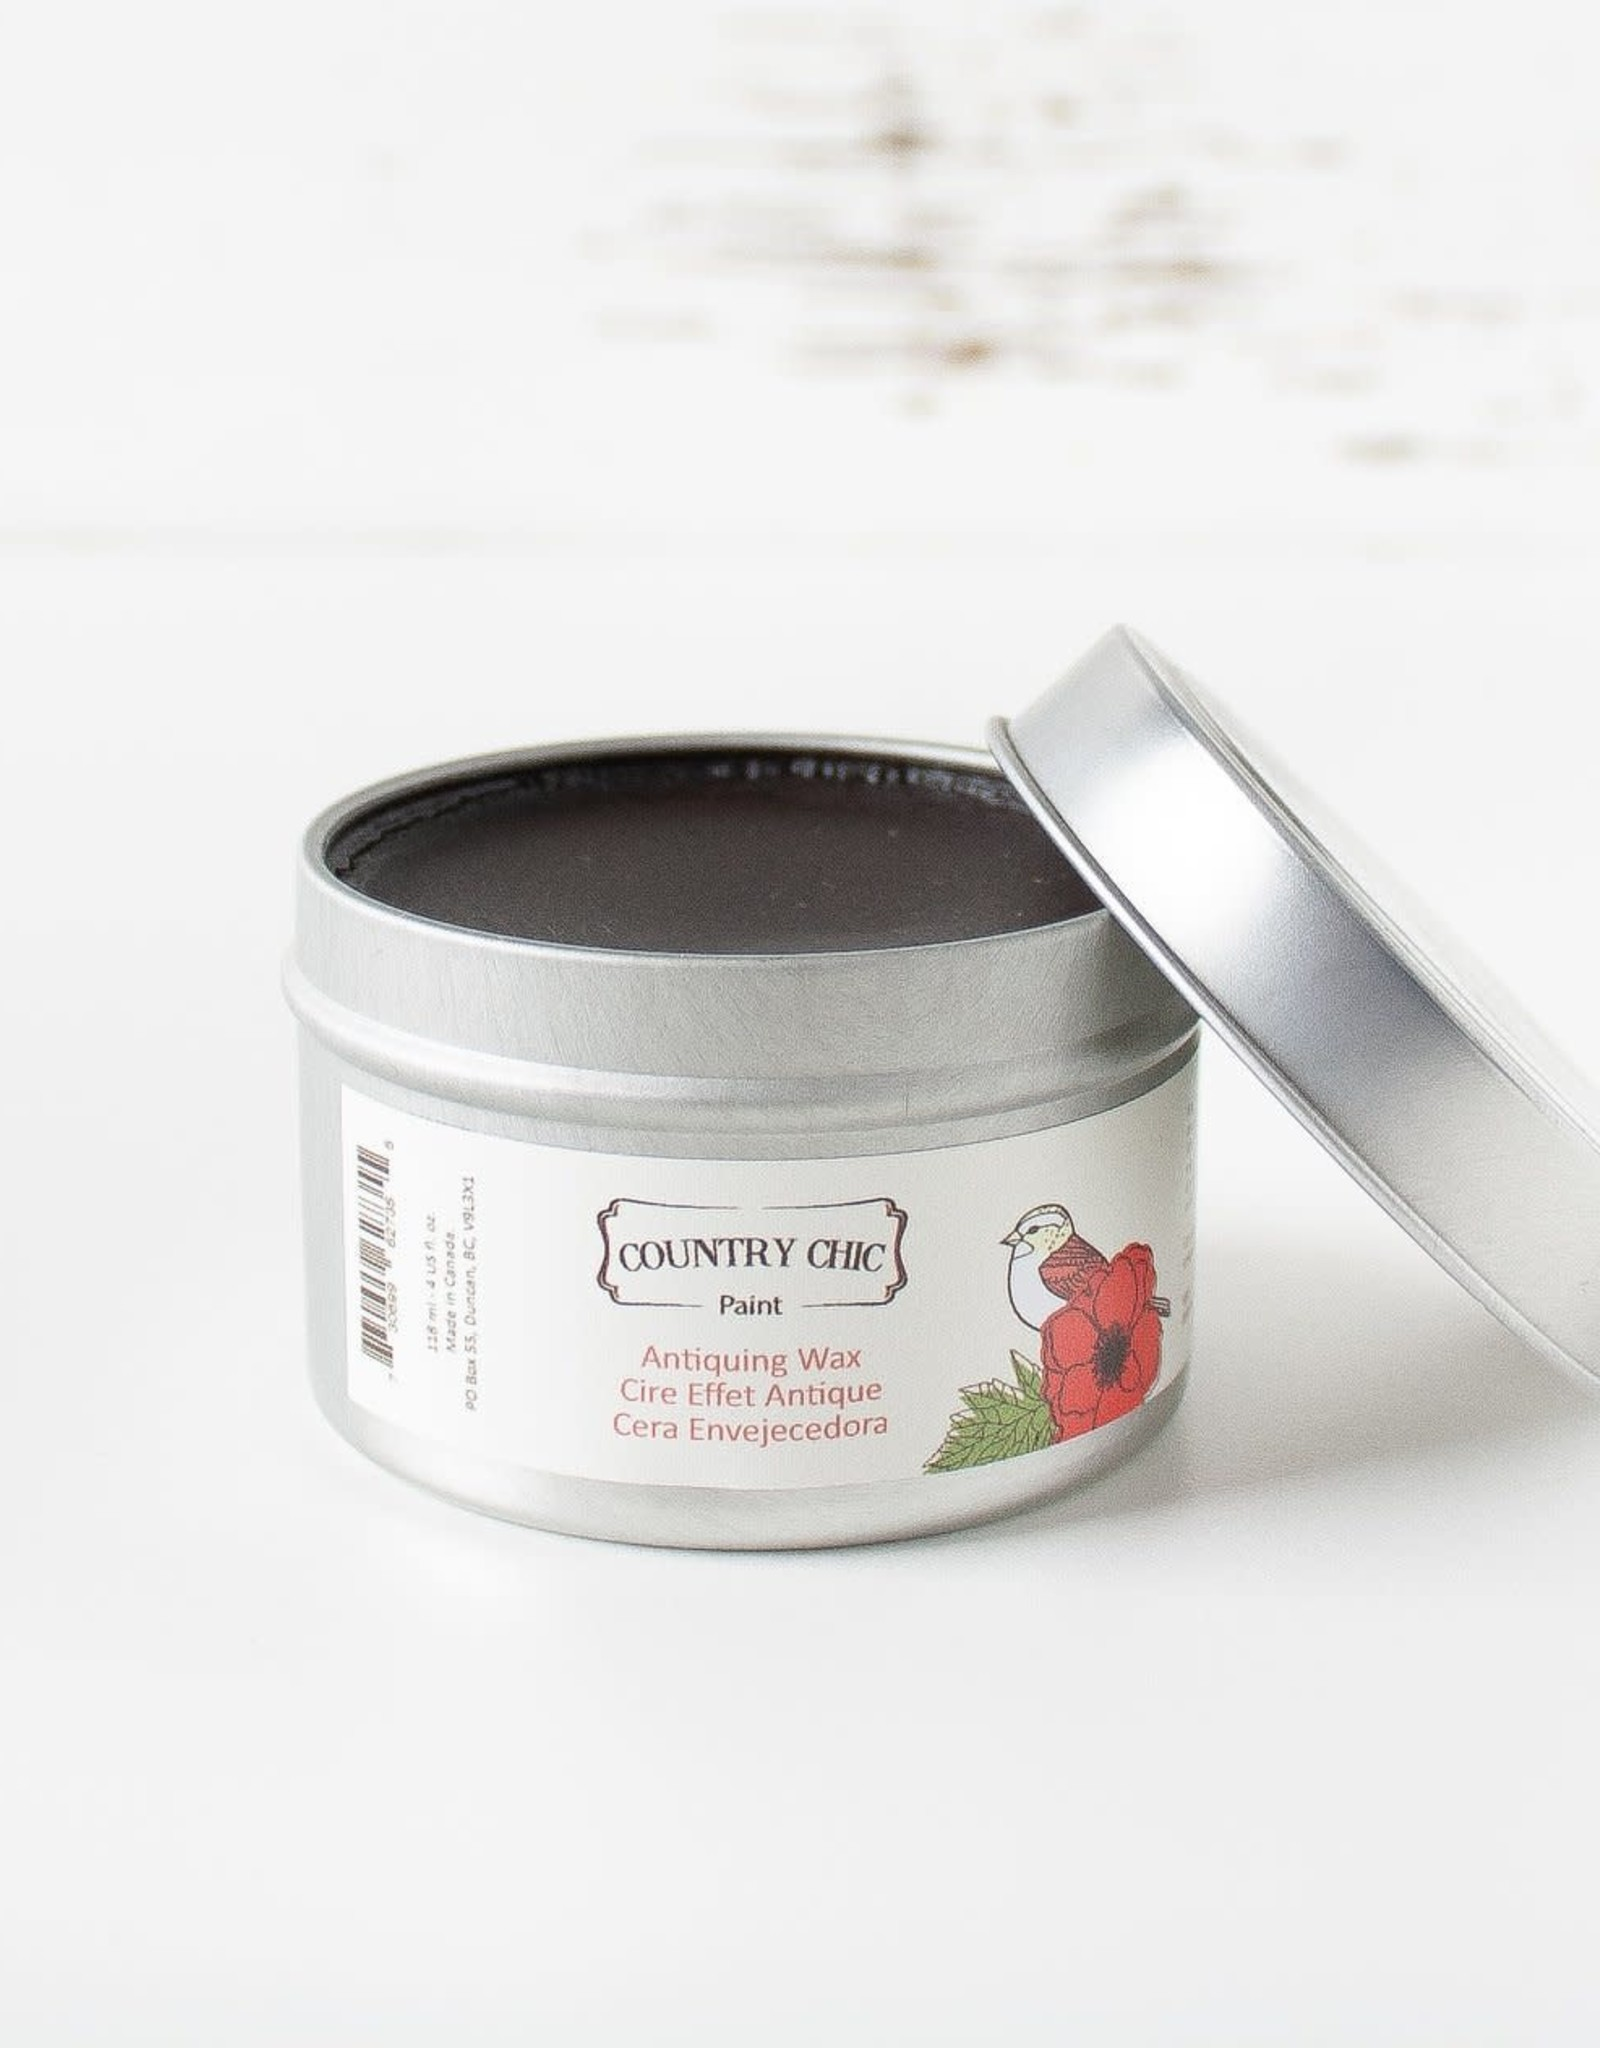 Country Chic Country Chic Antique Wax 2oz